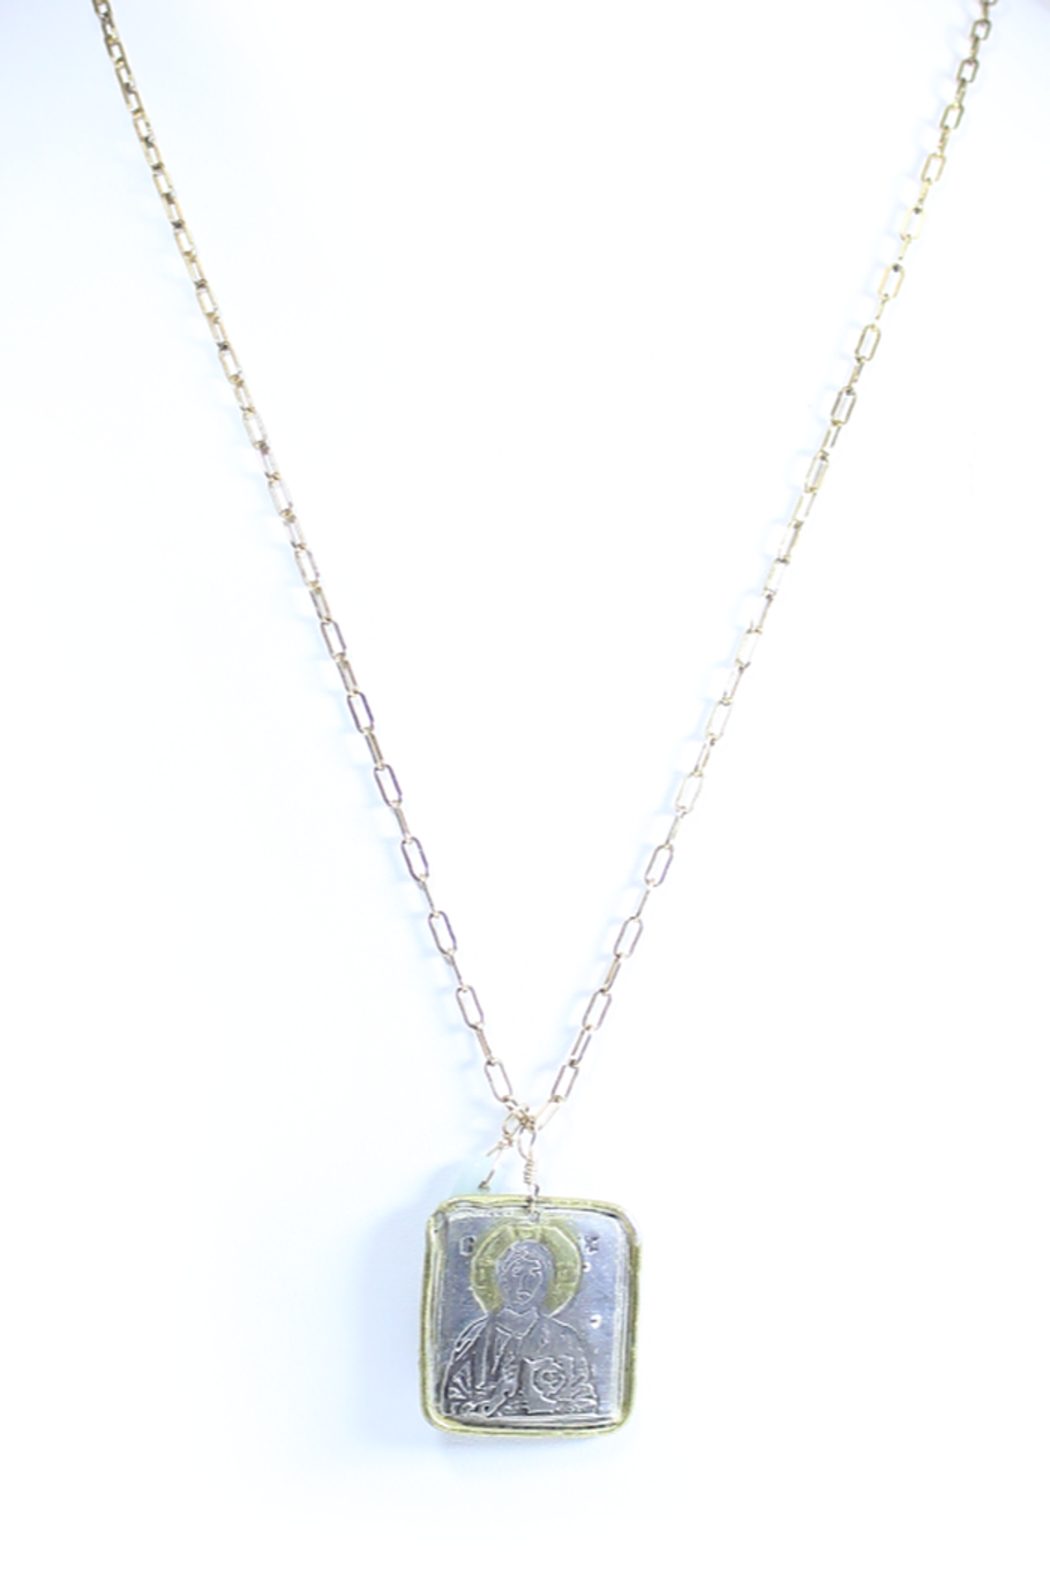 The Birds Nest SQUARE CHRIST PANTOCRATOR NECKLACE - 15.5 INCH CHAIN - Main Image